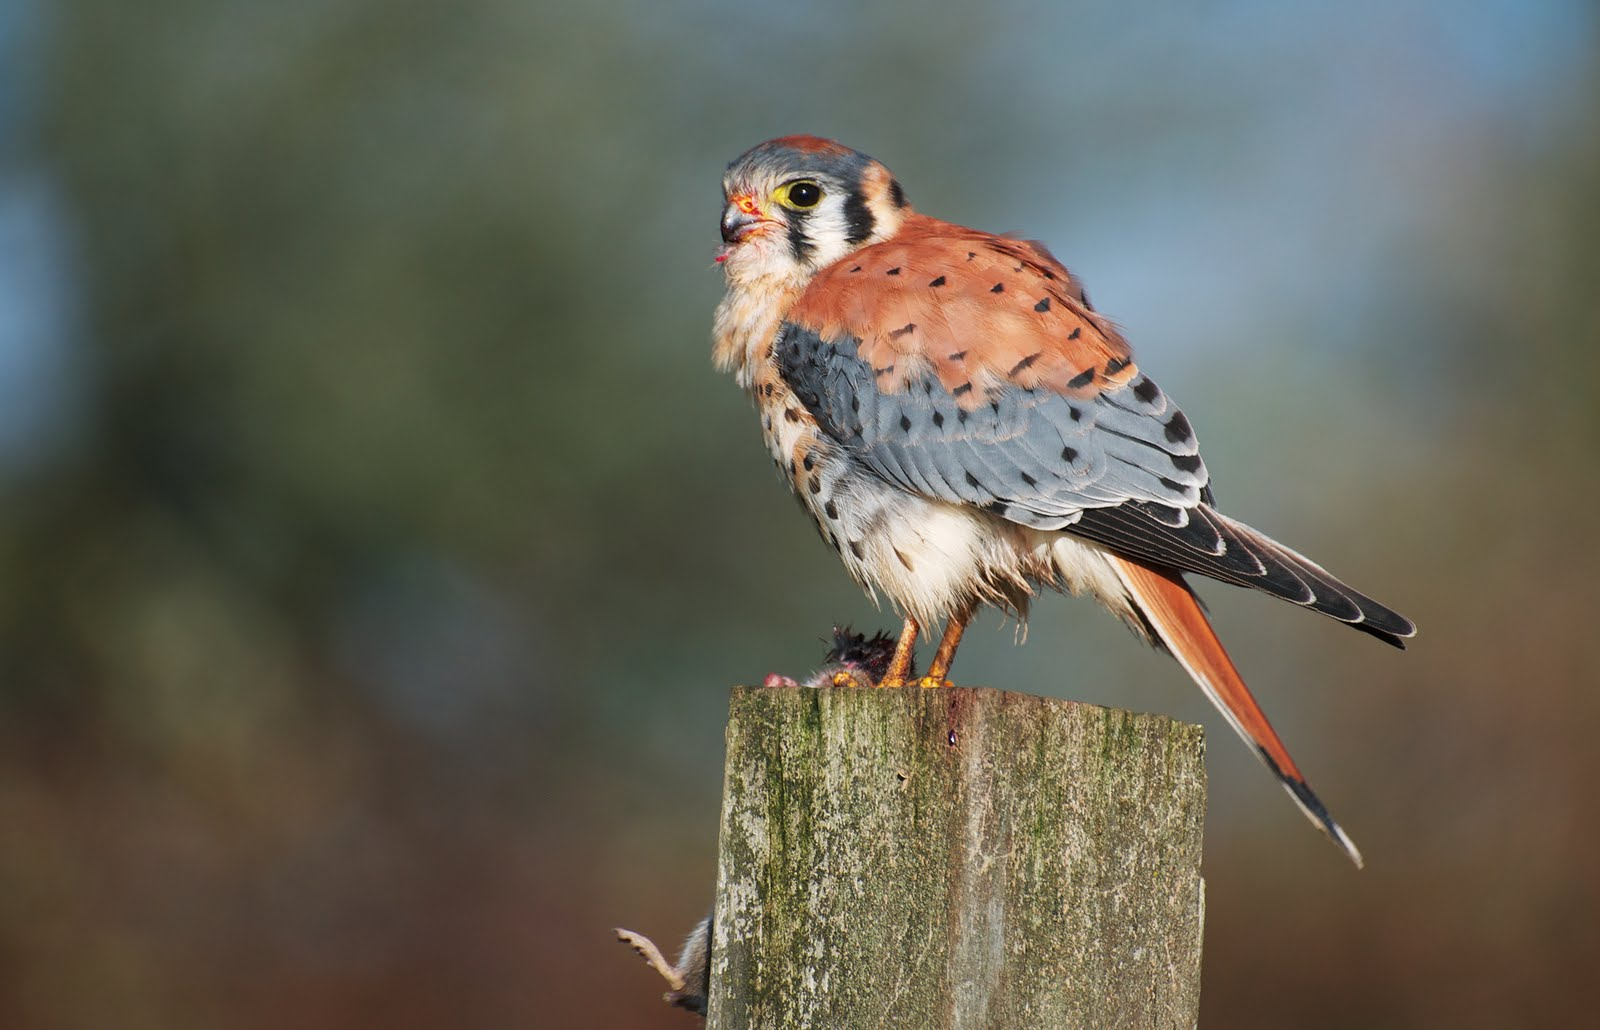 American Kestrel on a stump